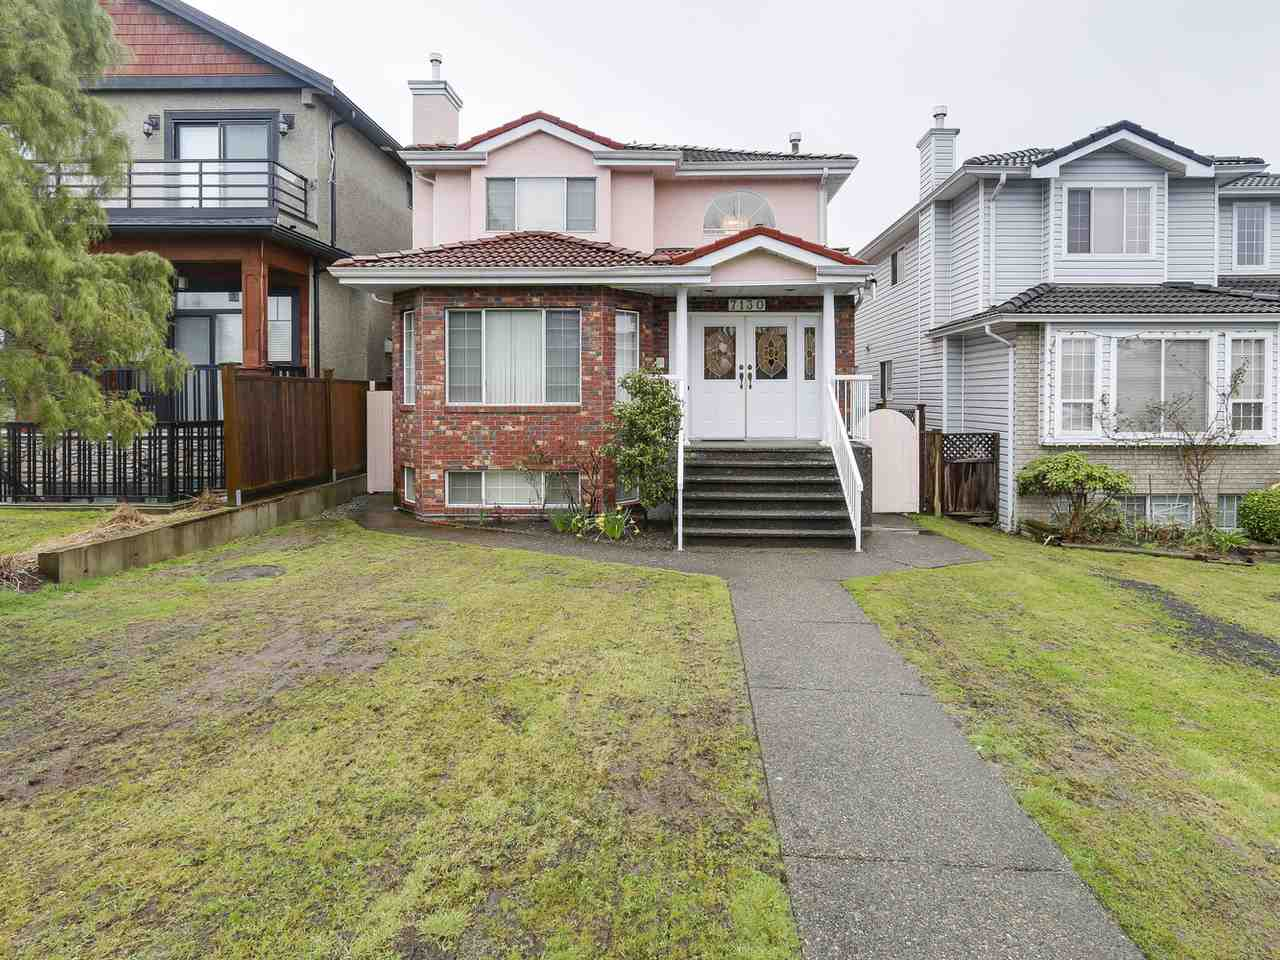 Detached at 7130 DUMFRIES STREET, Vancouver East, British Columbia. Image 1